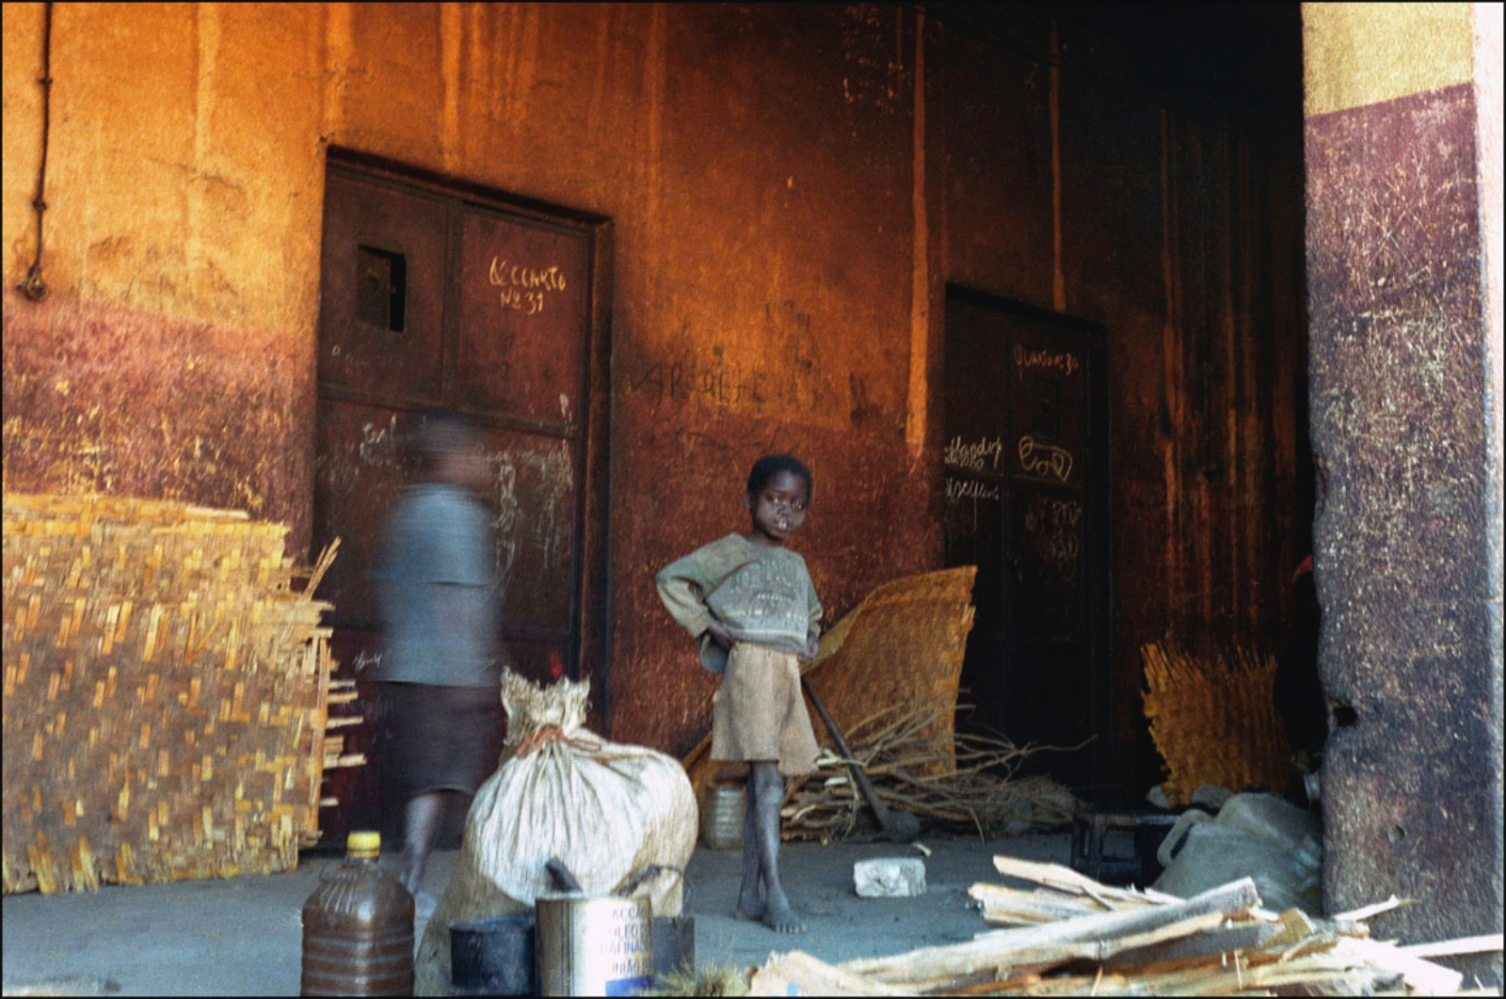 Girl and Blurry Friend, Caala, Angola, July 2000